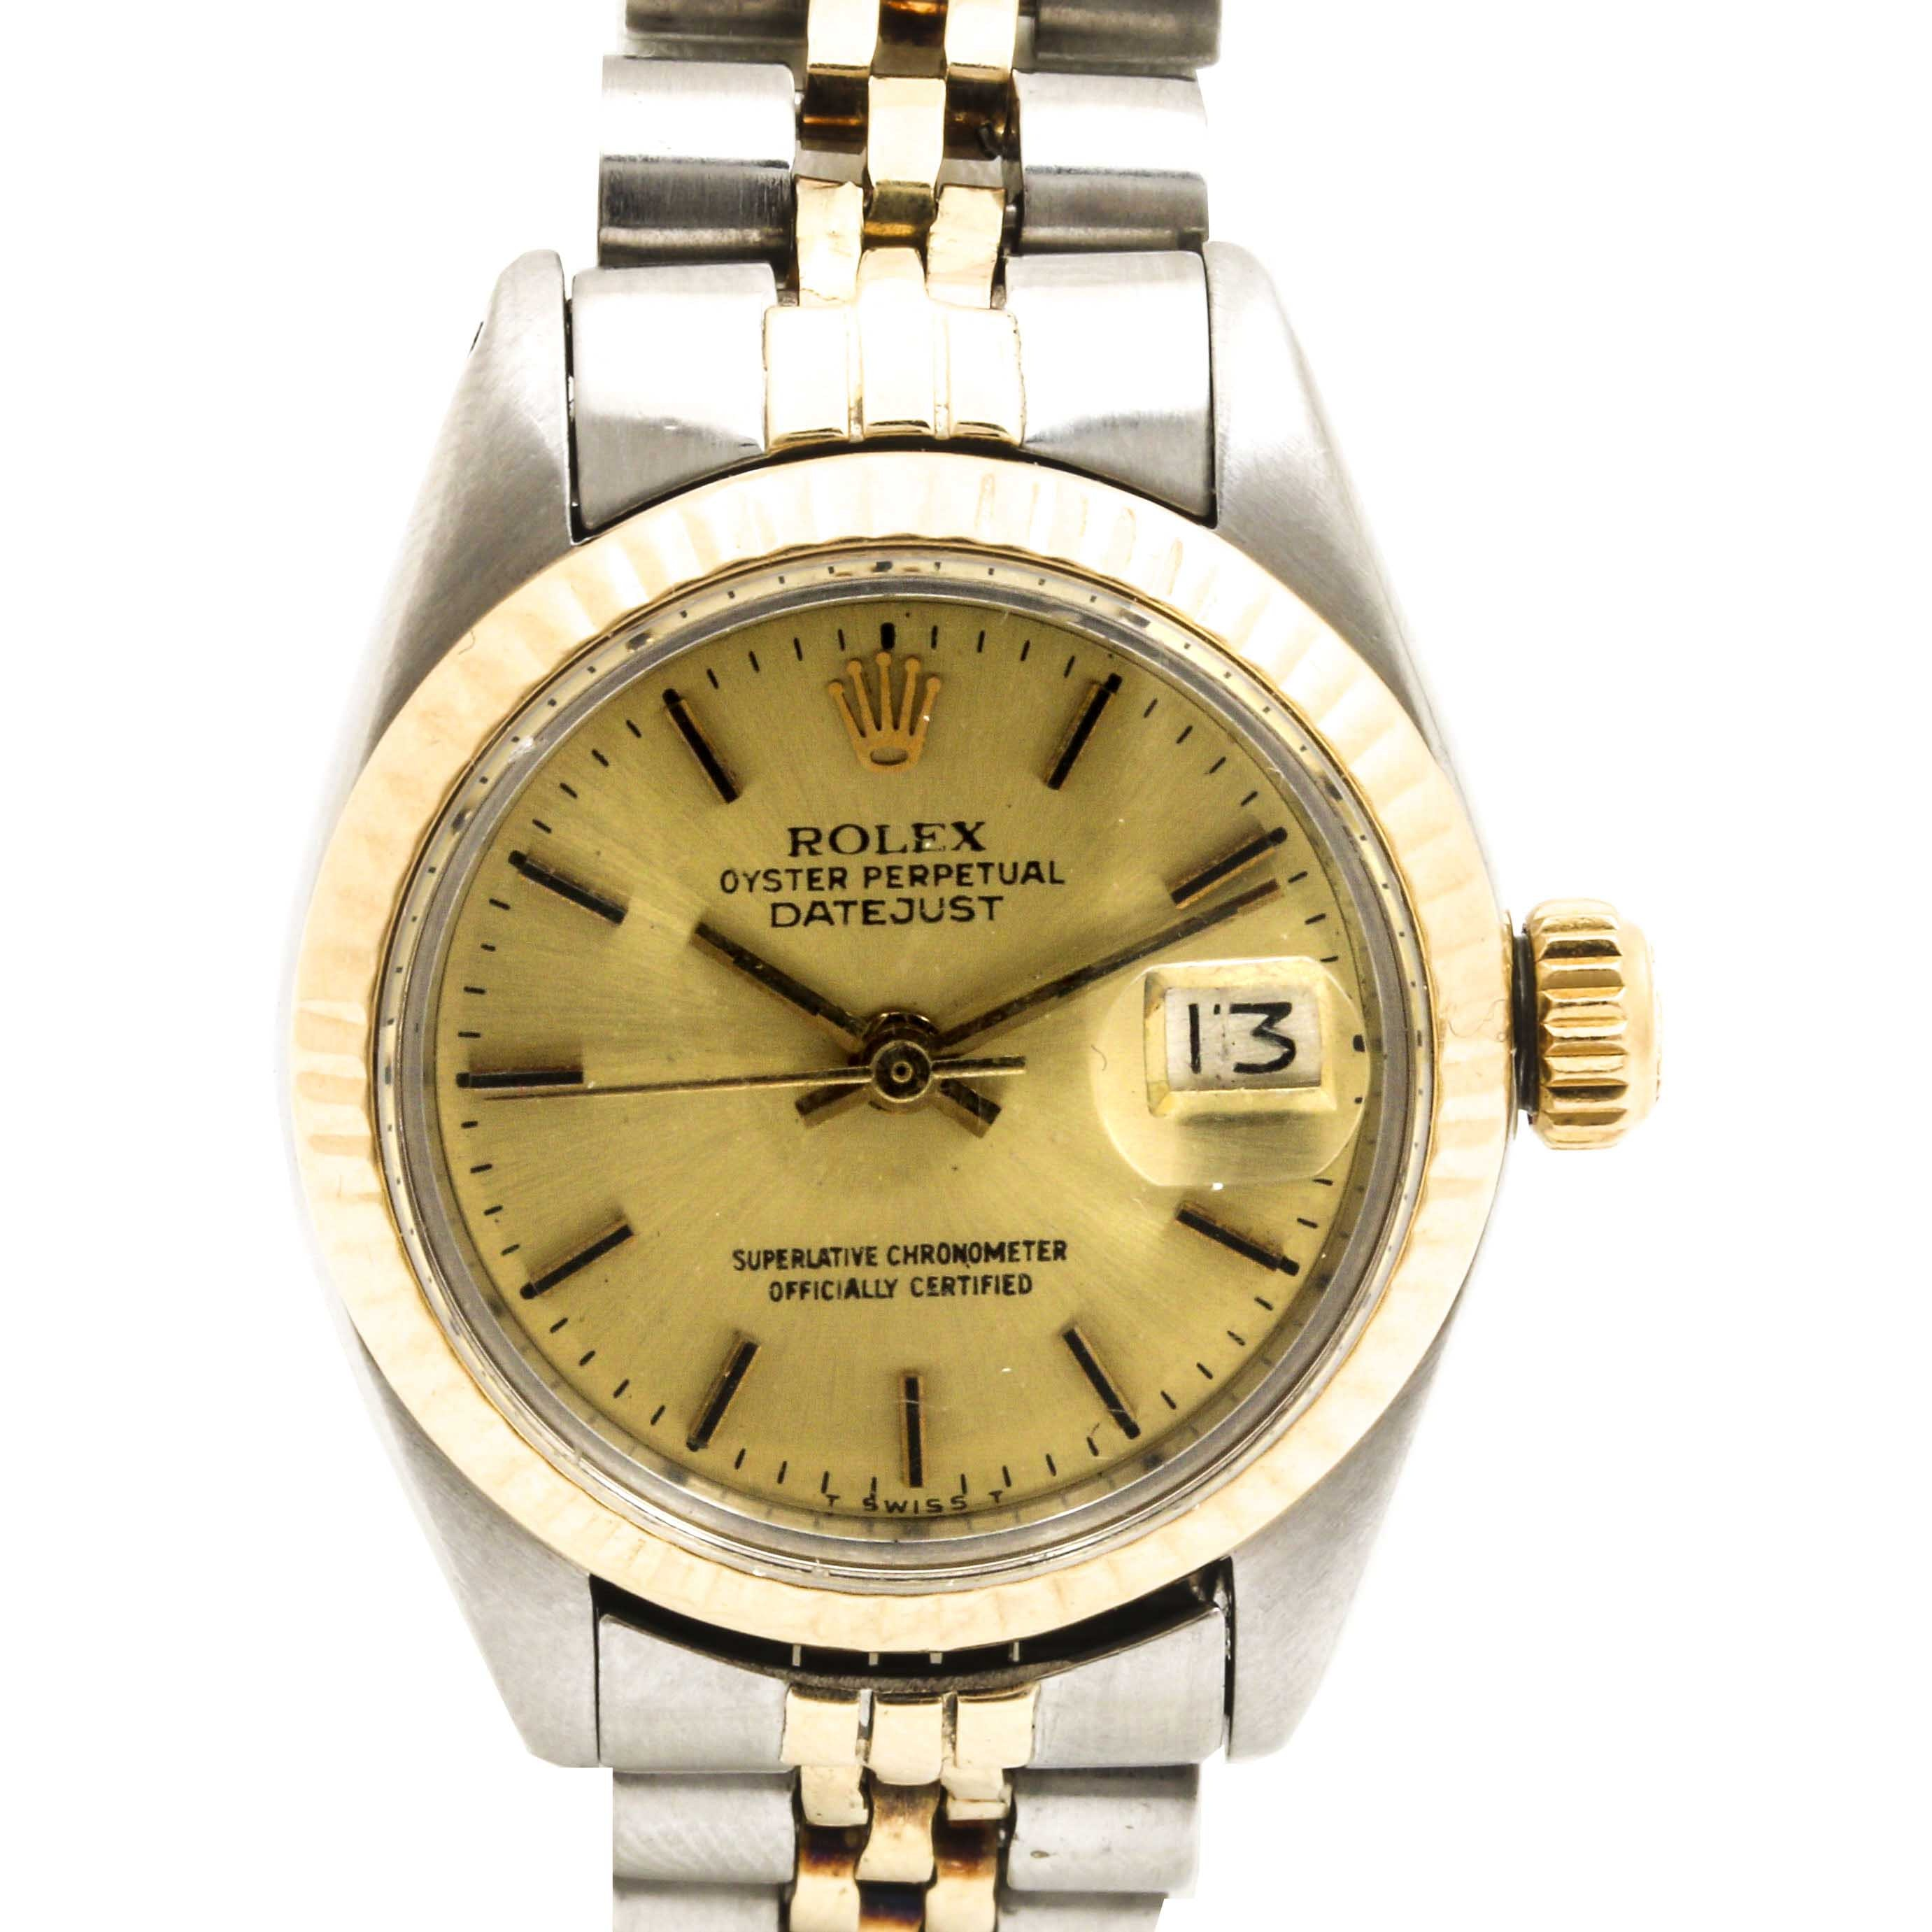 Rolex Stainless Steel and 14K Yellow Gold Accented Wristwatch